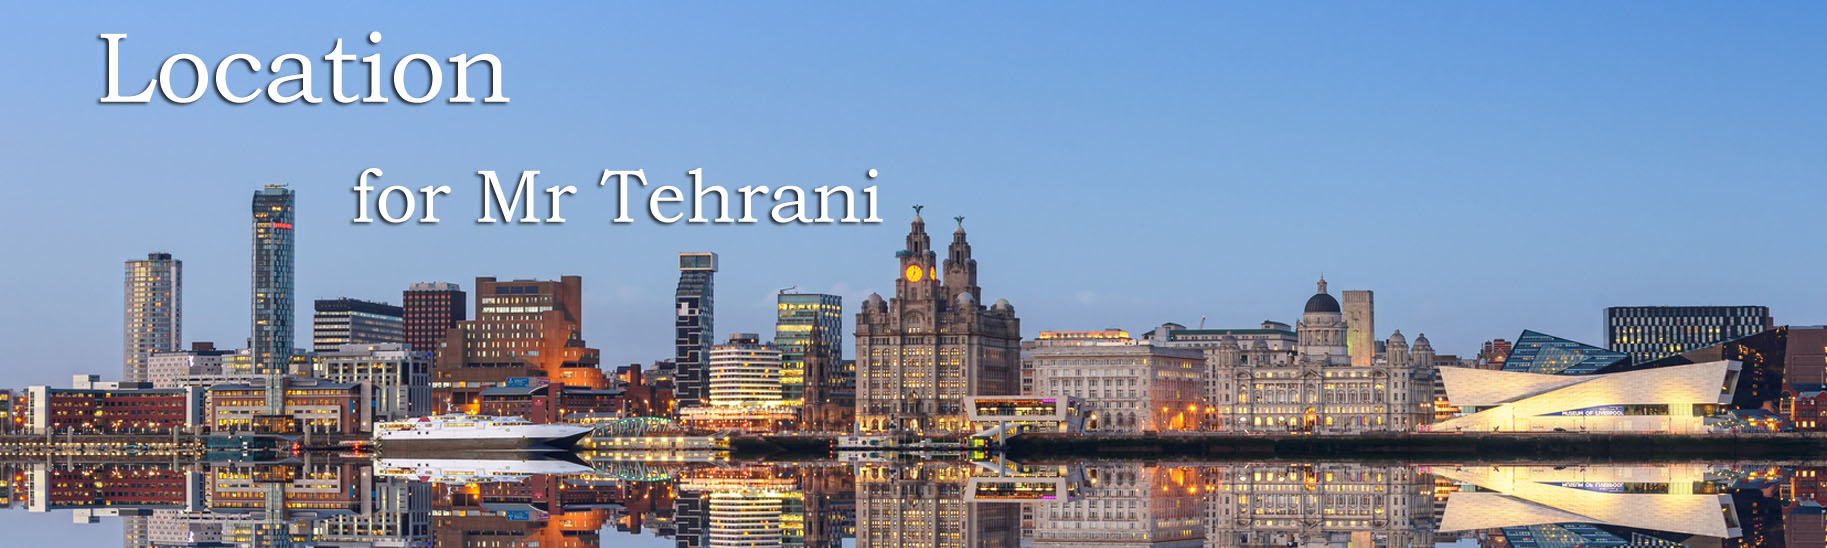 Location for Mr Tehrani, Liverpool skin cancer specialist & Mohs surgeon